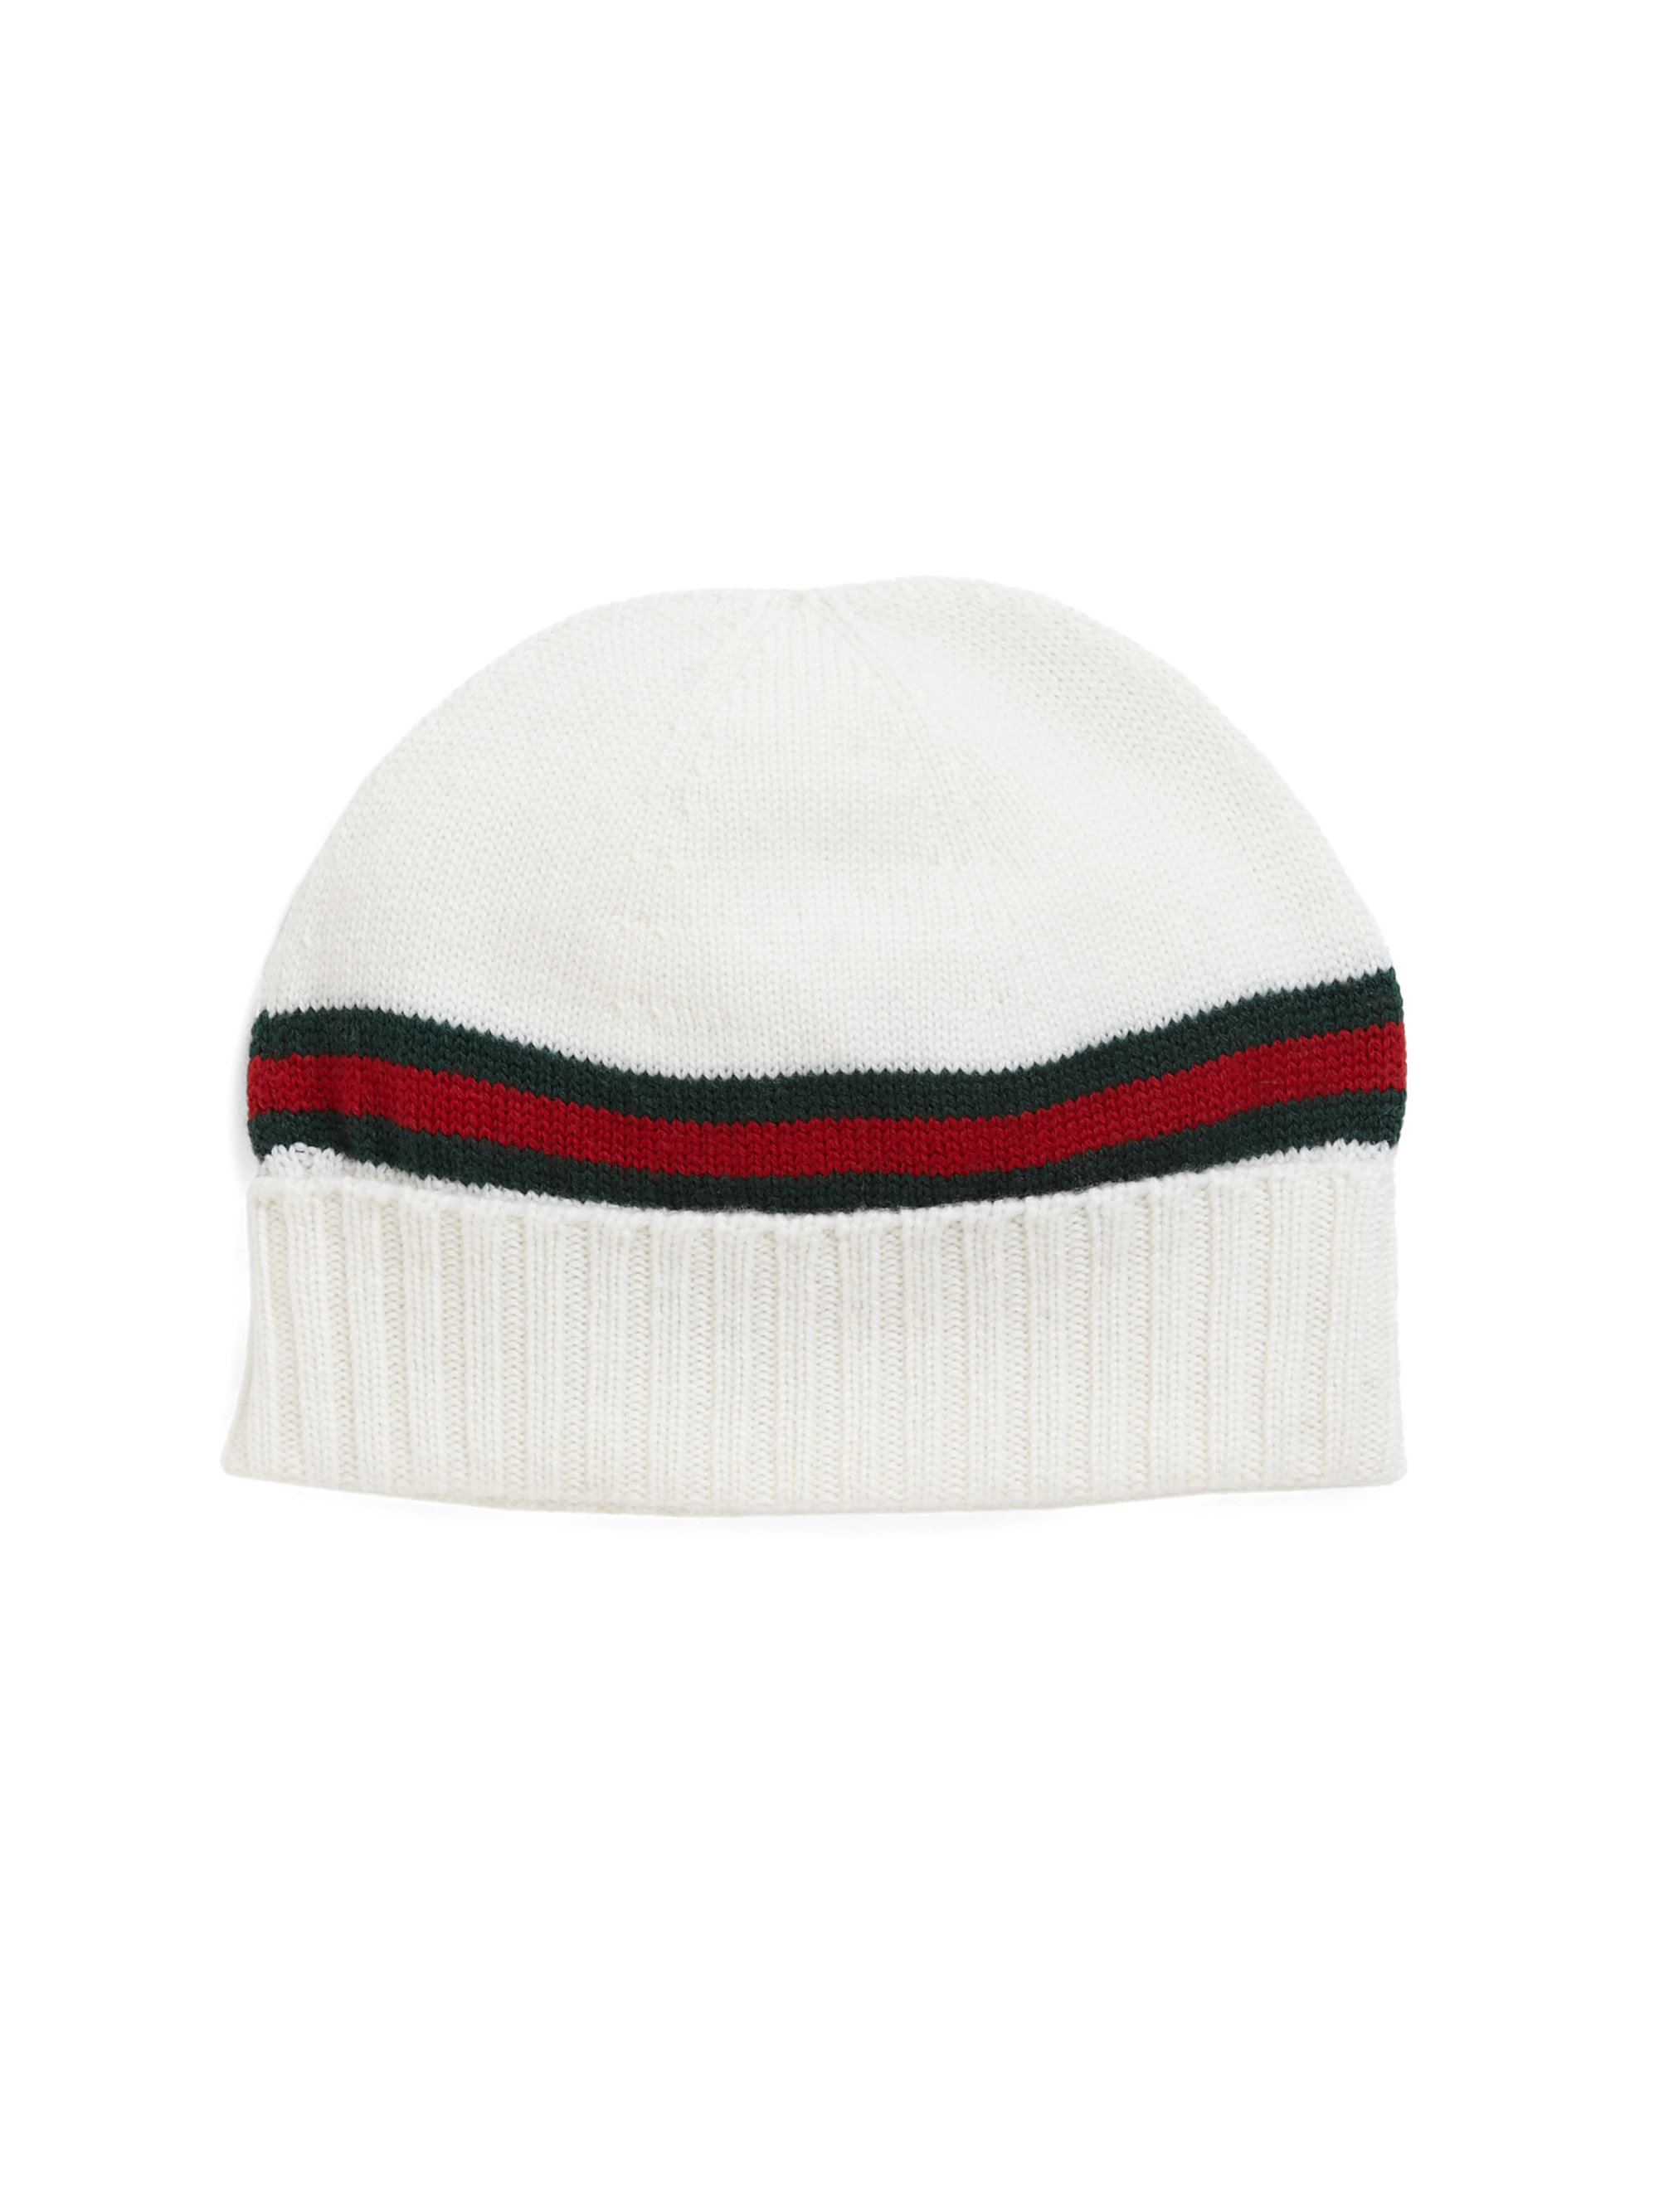 9419a6bce0209 Gucci Knit Hat in Black for Men - Lyst